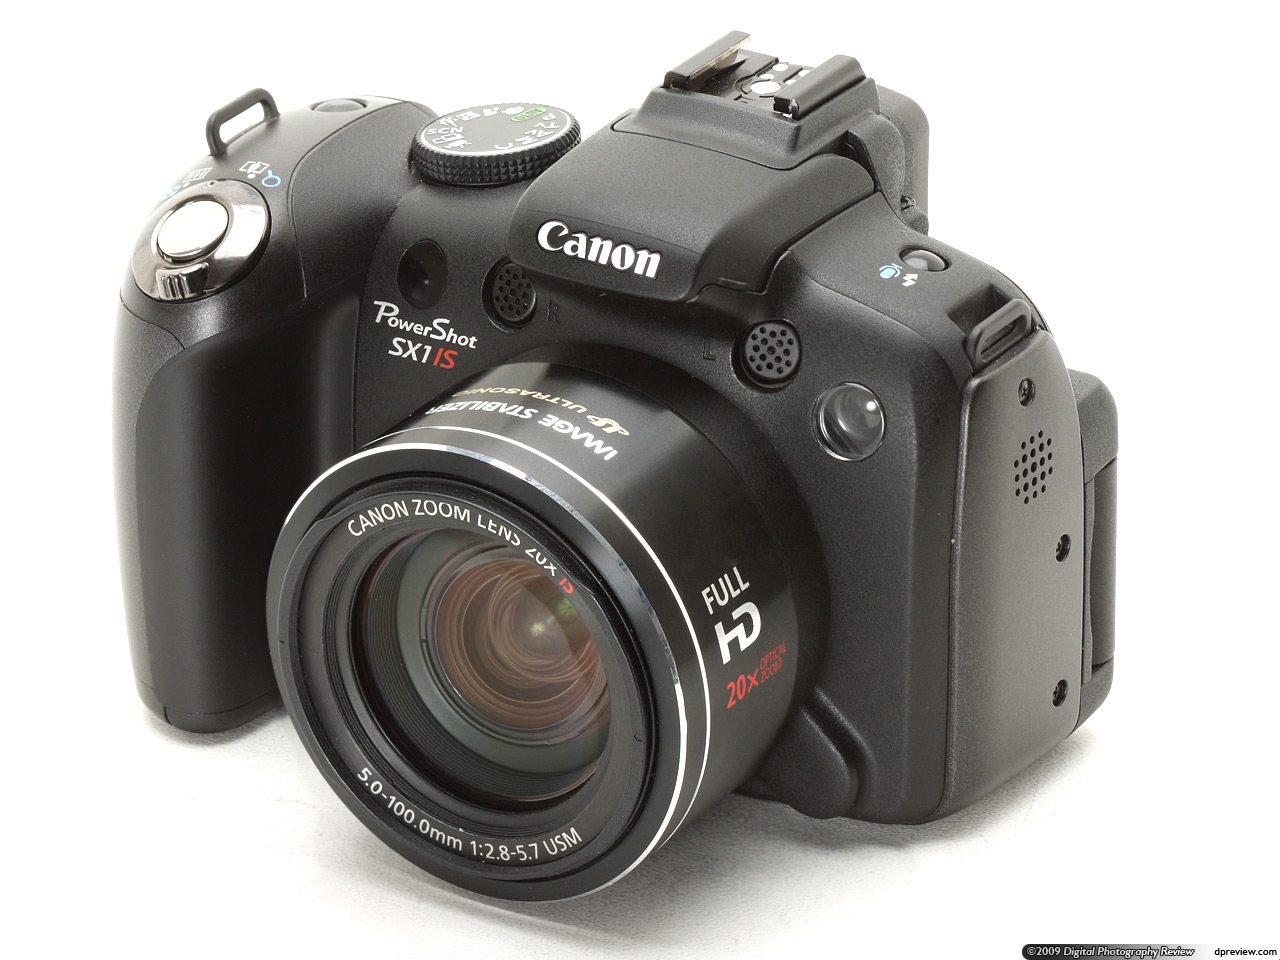 Canon PowerShot SX1 IS Review: Digital Photography Review